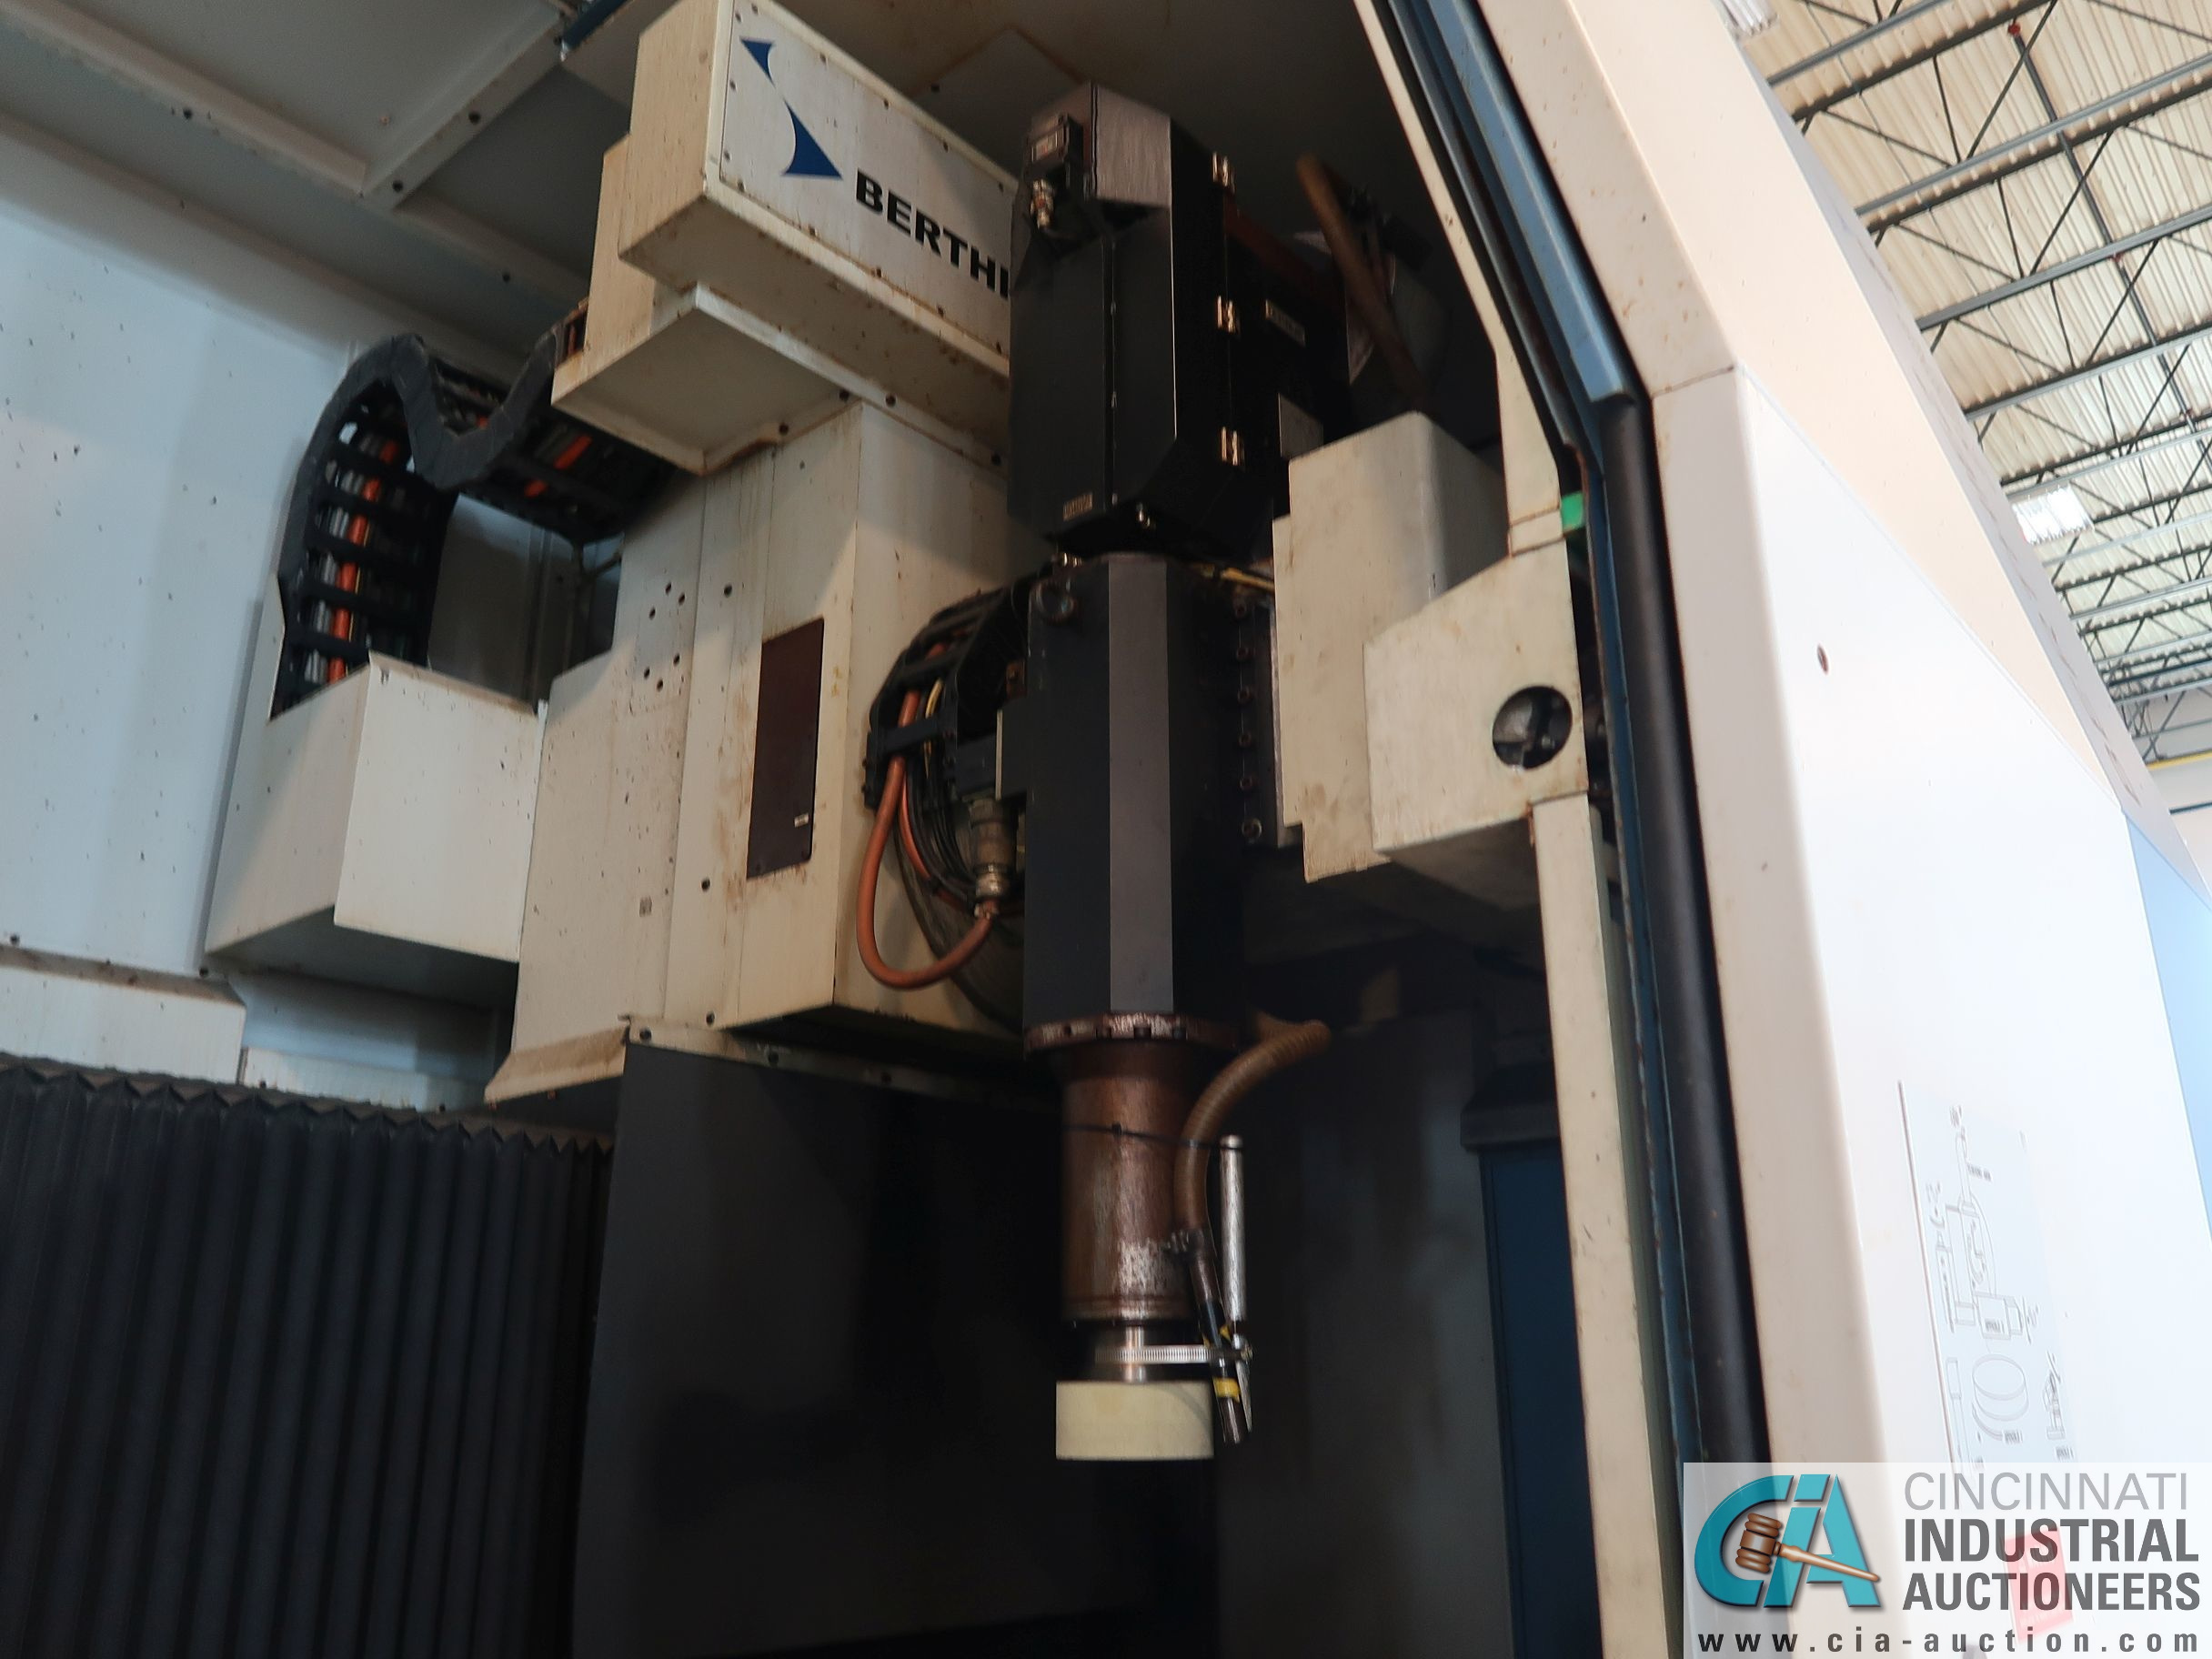 BERTHIEZ MODEL RVU 900/80 ID/OD, WITH TURNING, VERTICAL CNC GRINDER; S/N 4219, 84OD SIEMENS CONTROL - Image 18 of 33